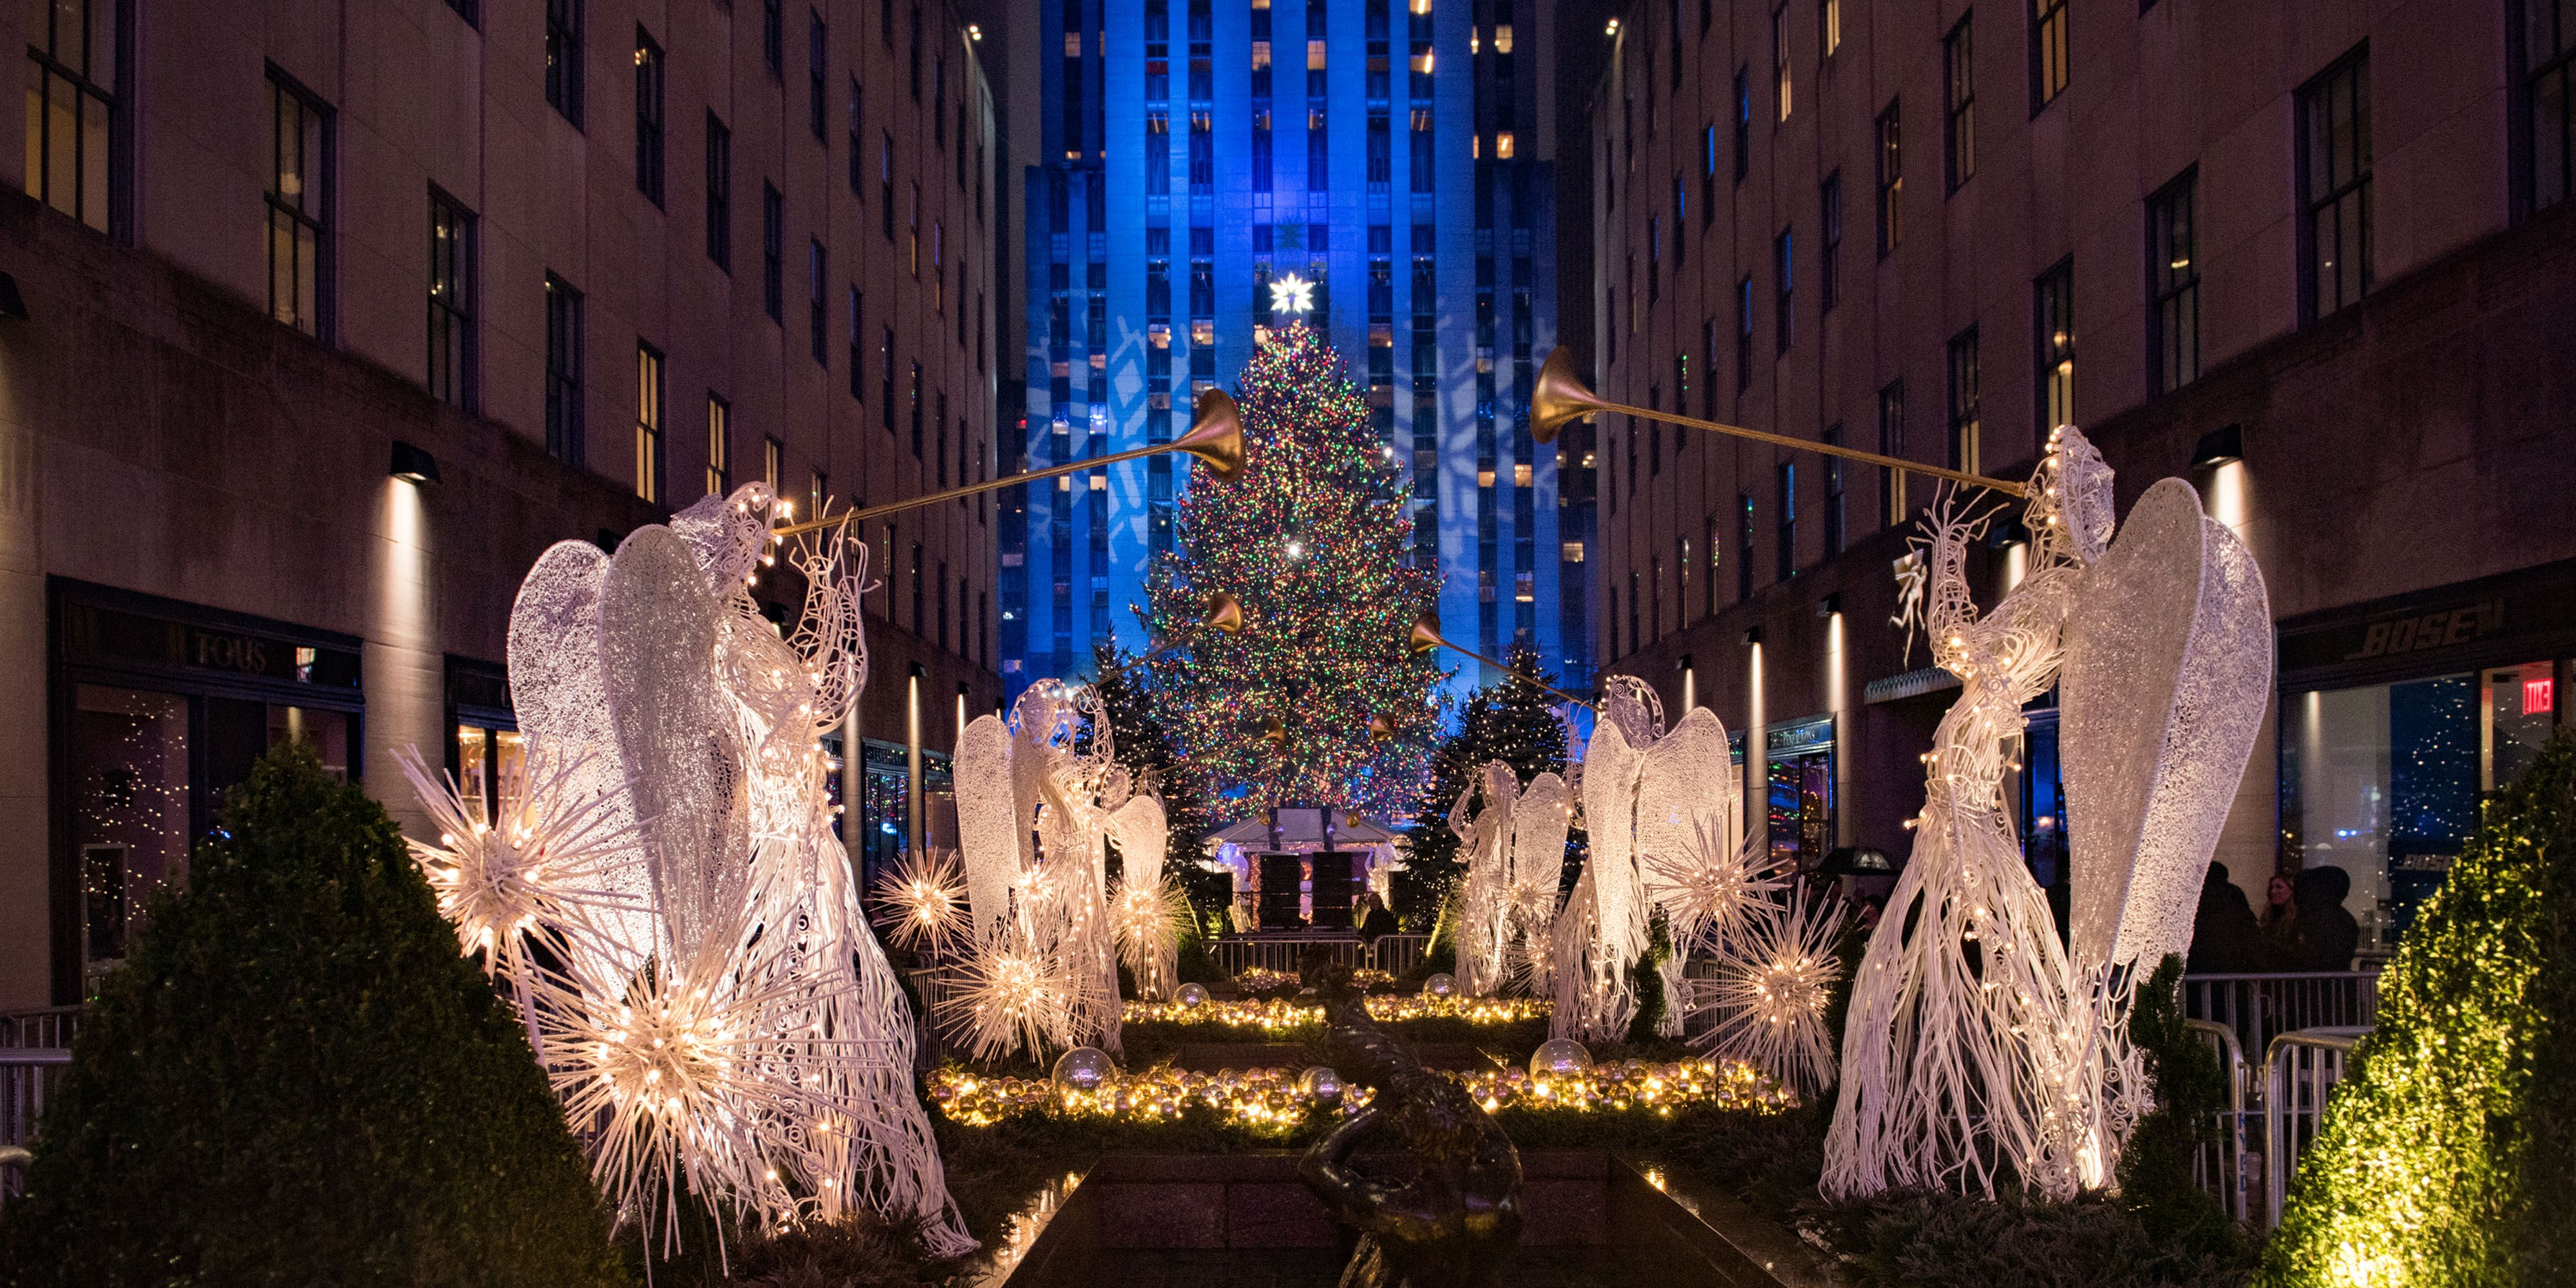 Rockefeller Center Has Picked This Year's Christmas Tree